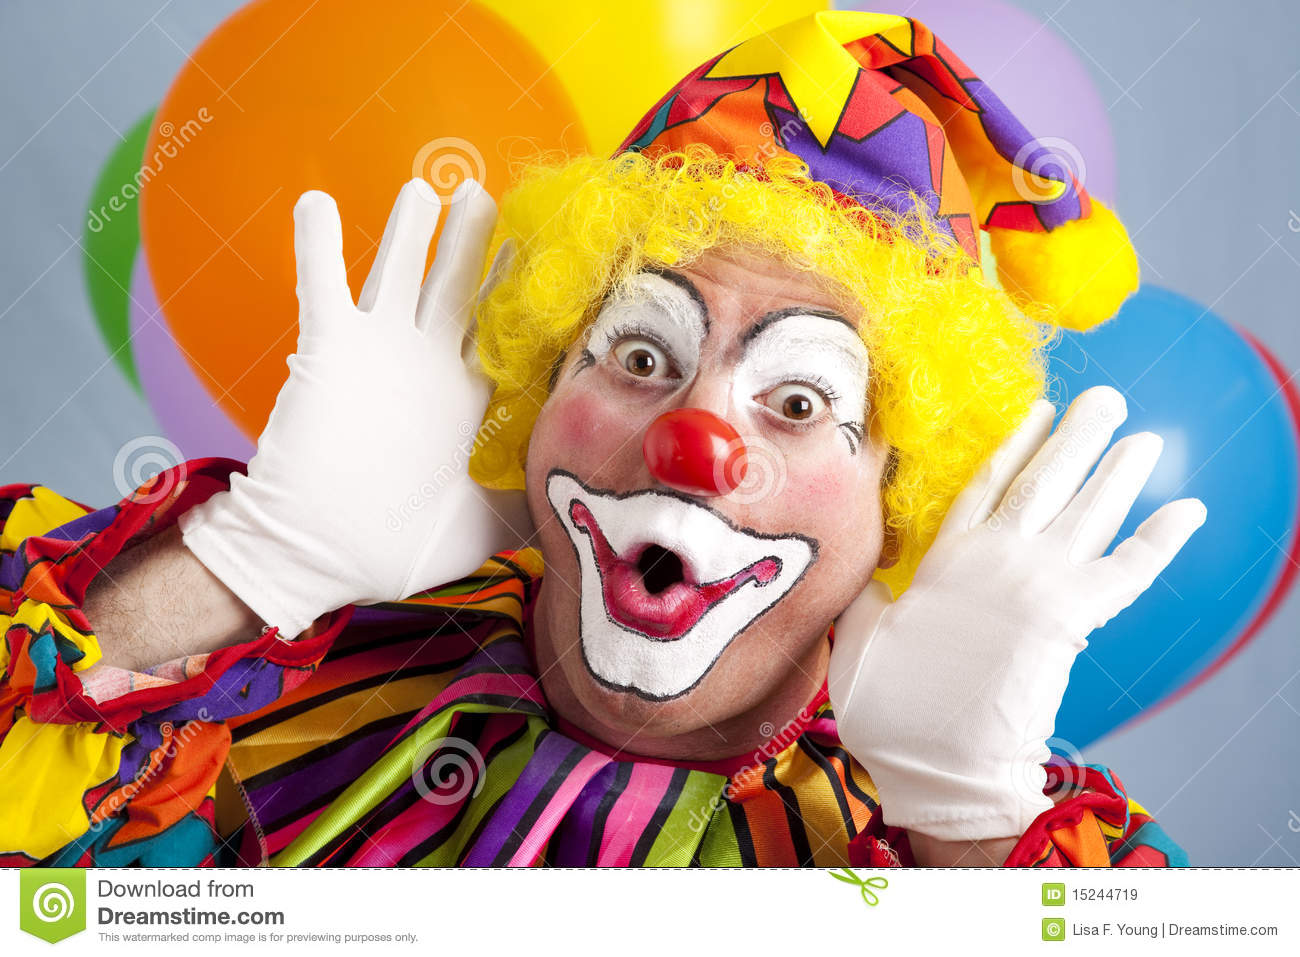 How To Paint A Funny Clown Face